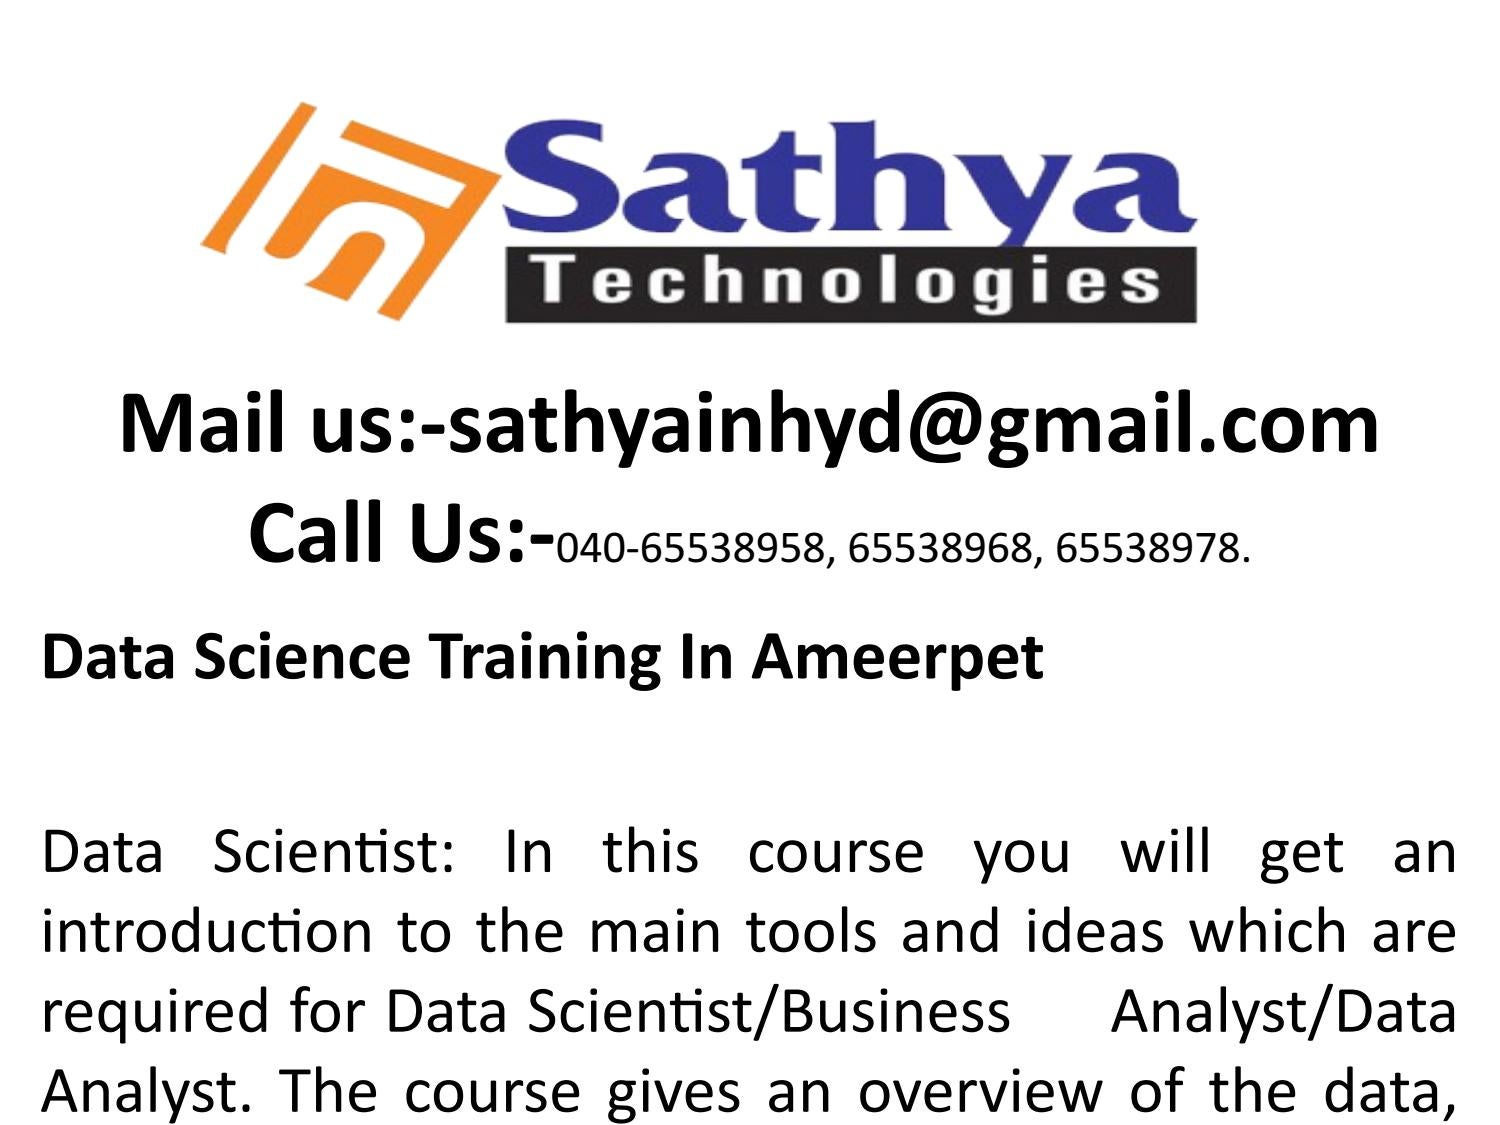 Data science ppt by ramusathya5555 - issuu